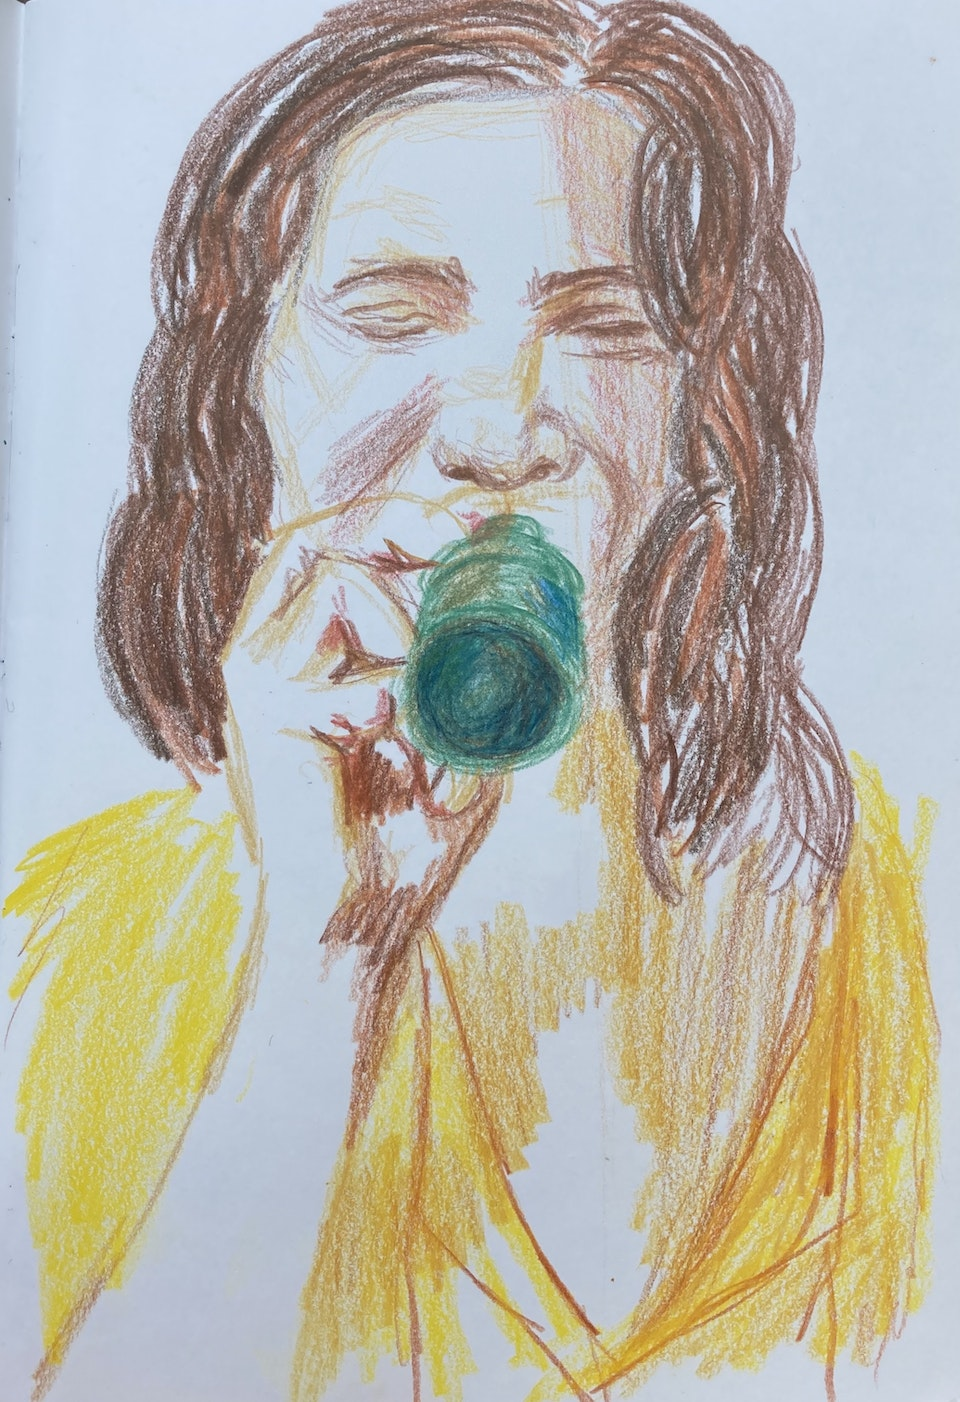 Portraits - Beer and Yellow Dress - 2020 - Pencil on Paper - 15 x 21 cm A5